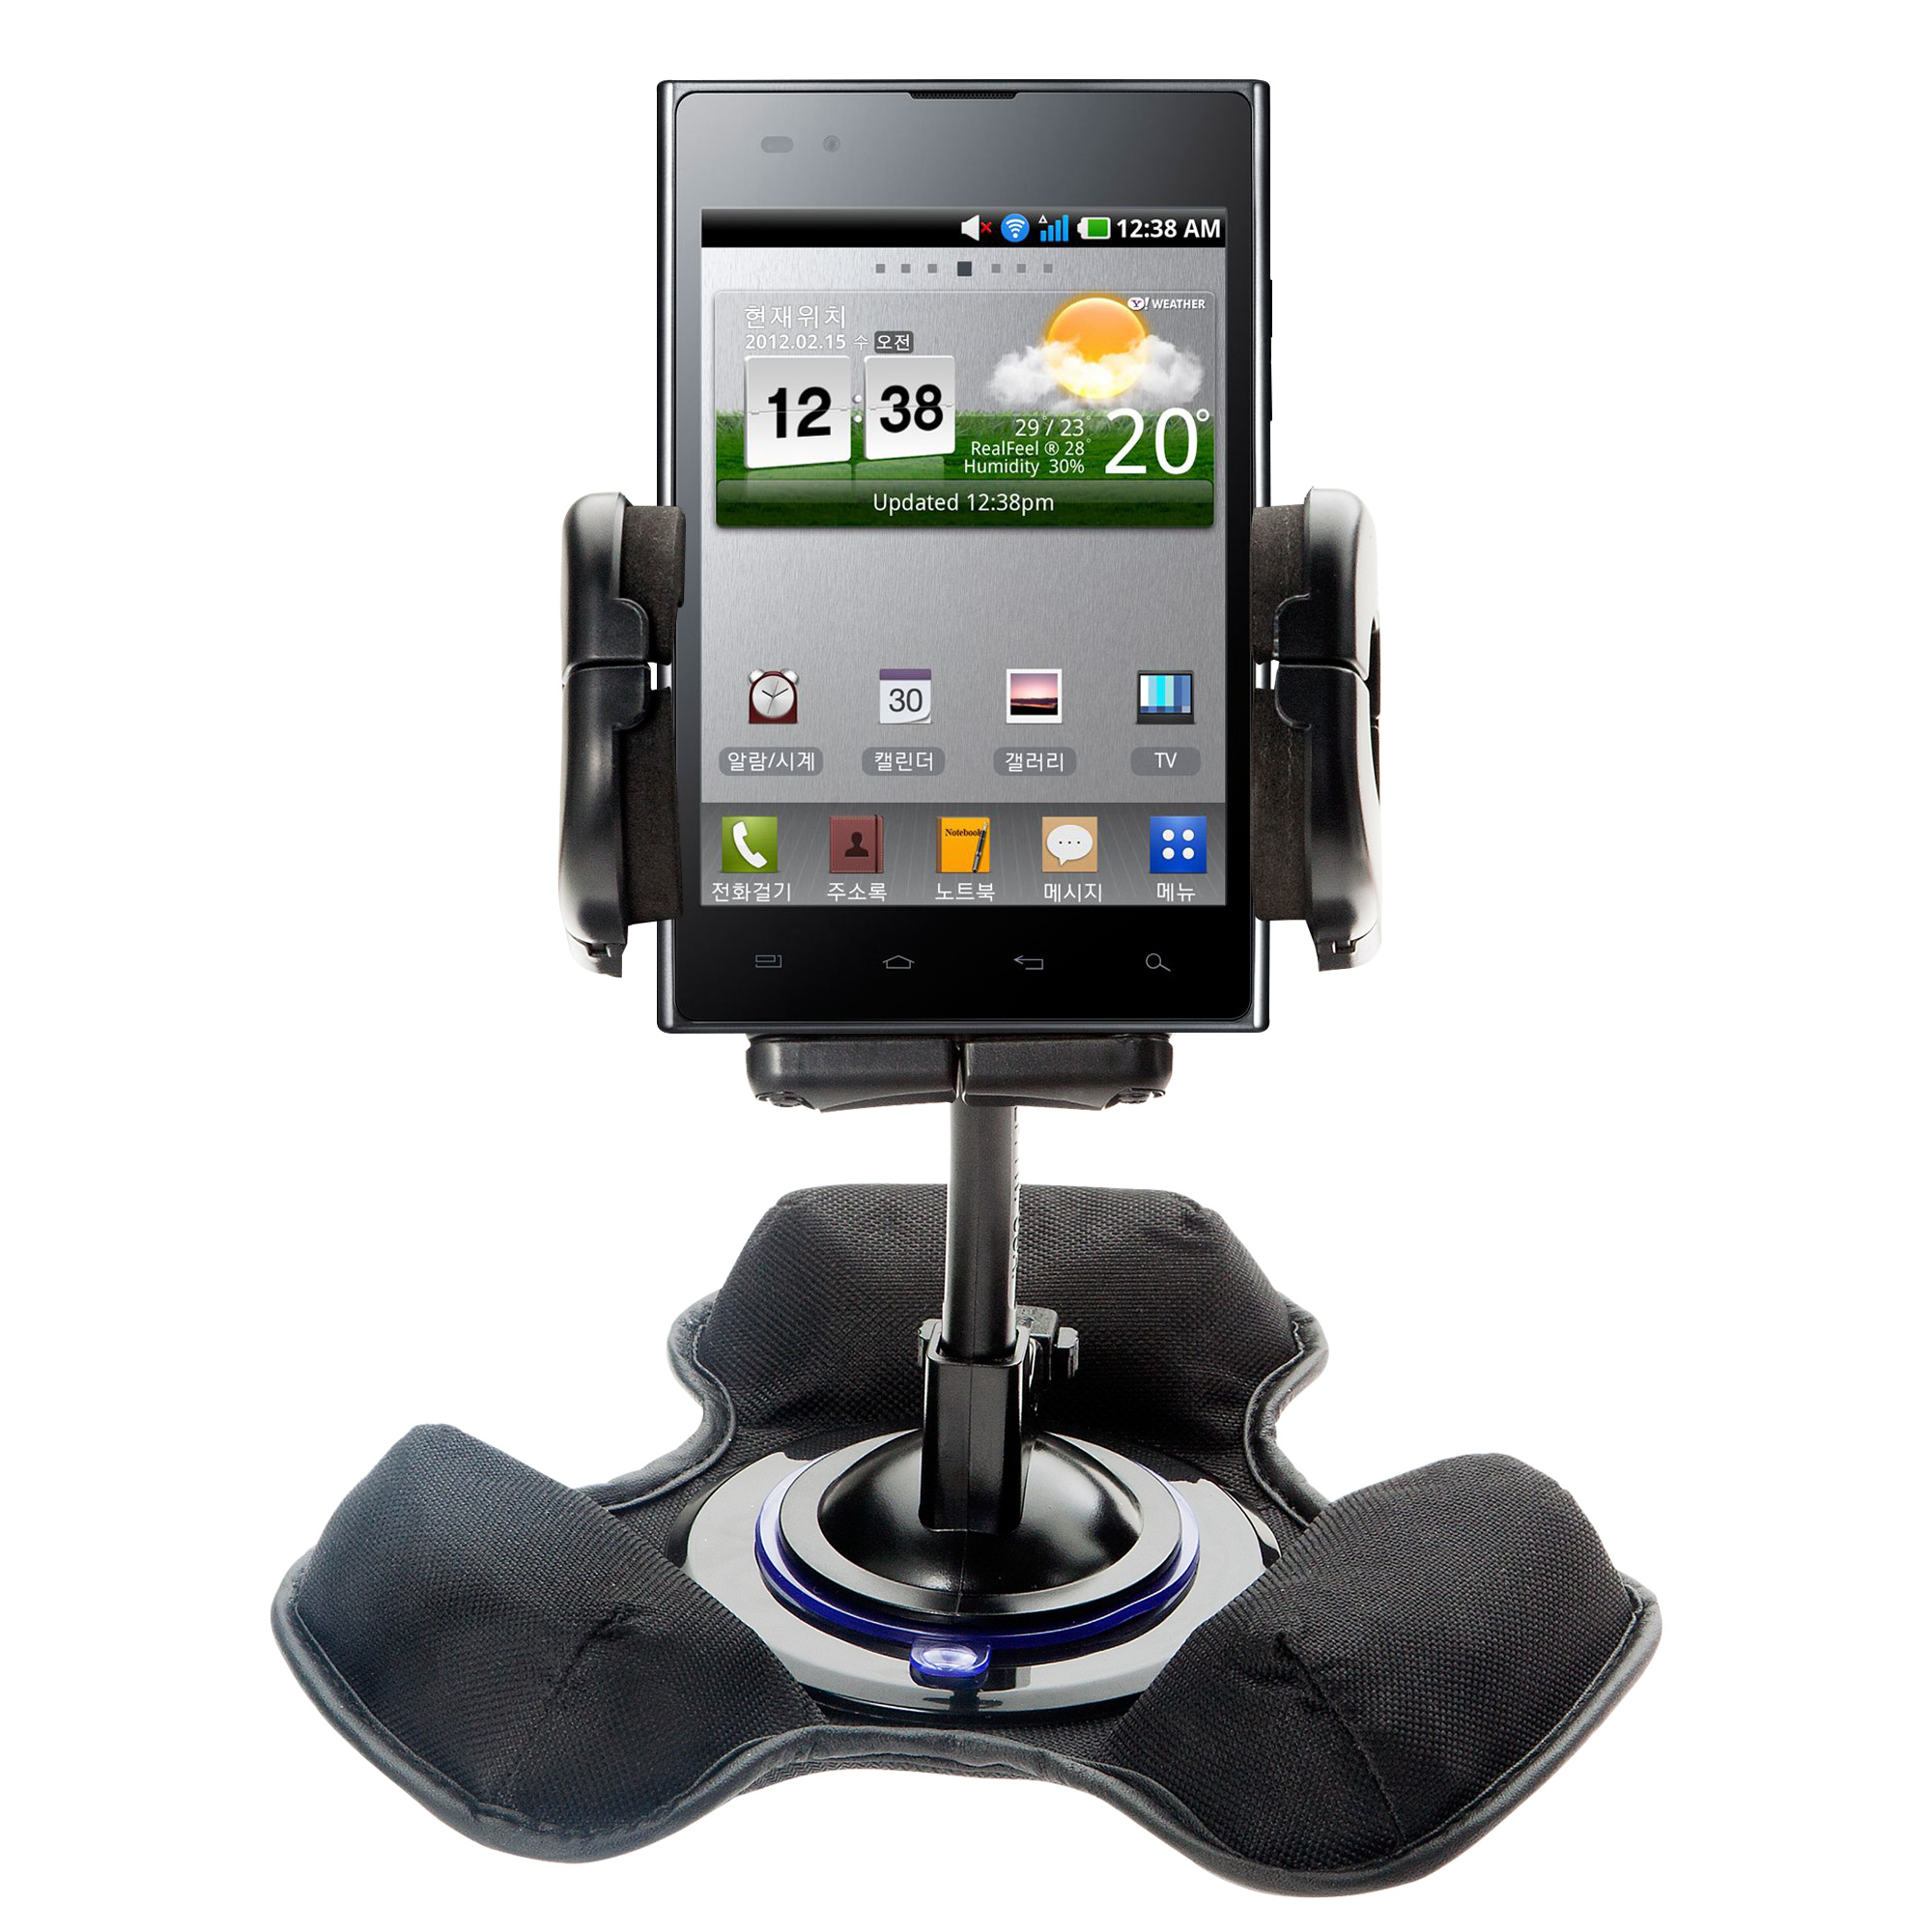 Dash and Windshield Holder compatible with the LG F100L